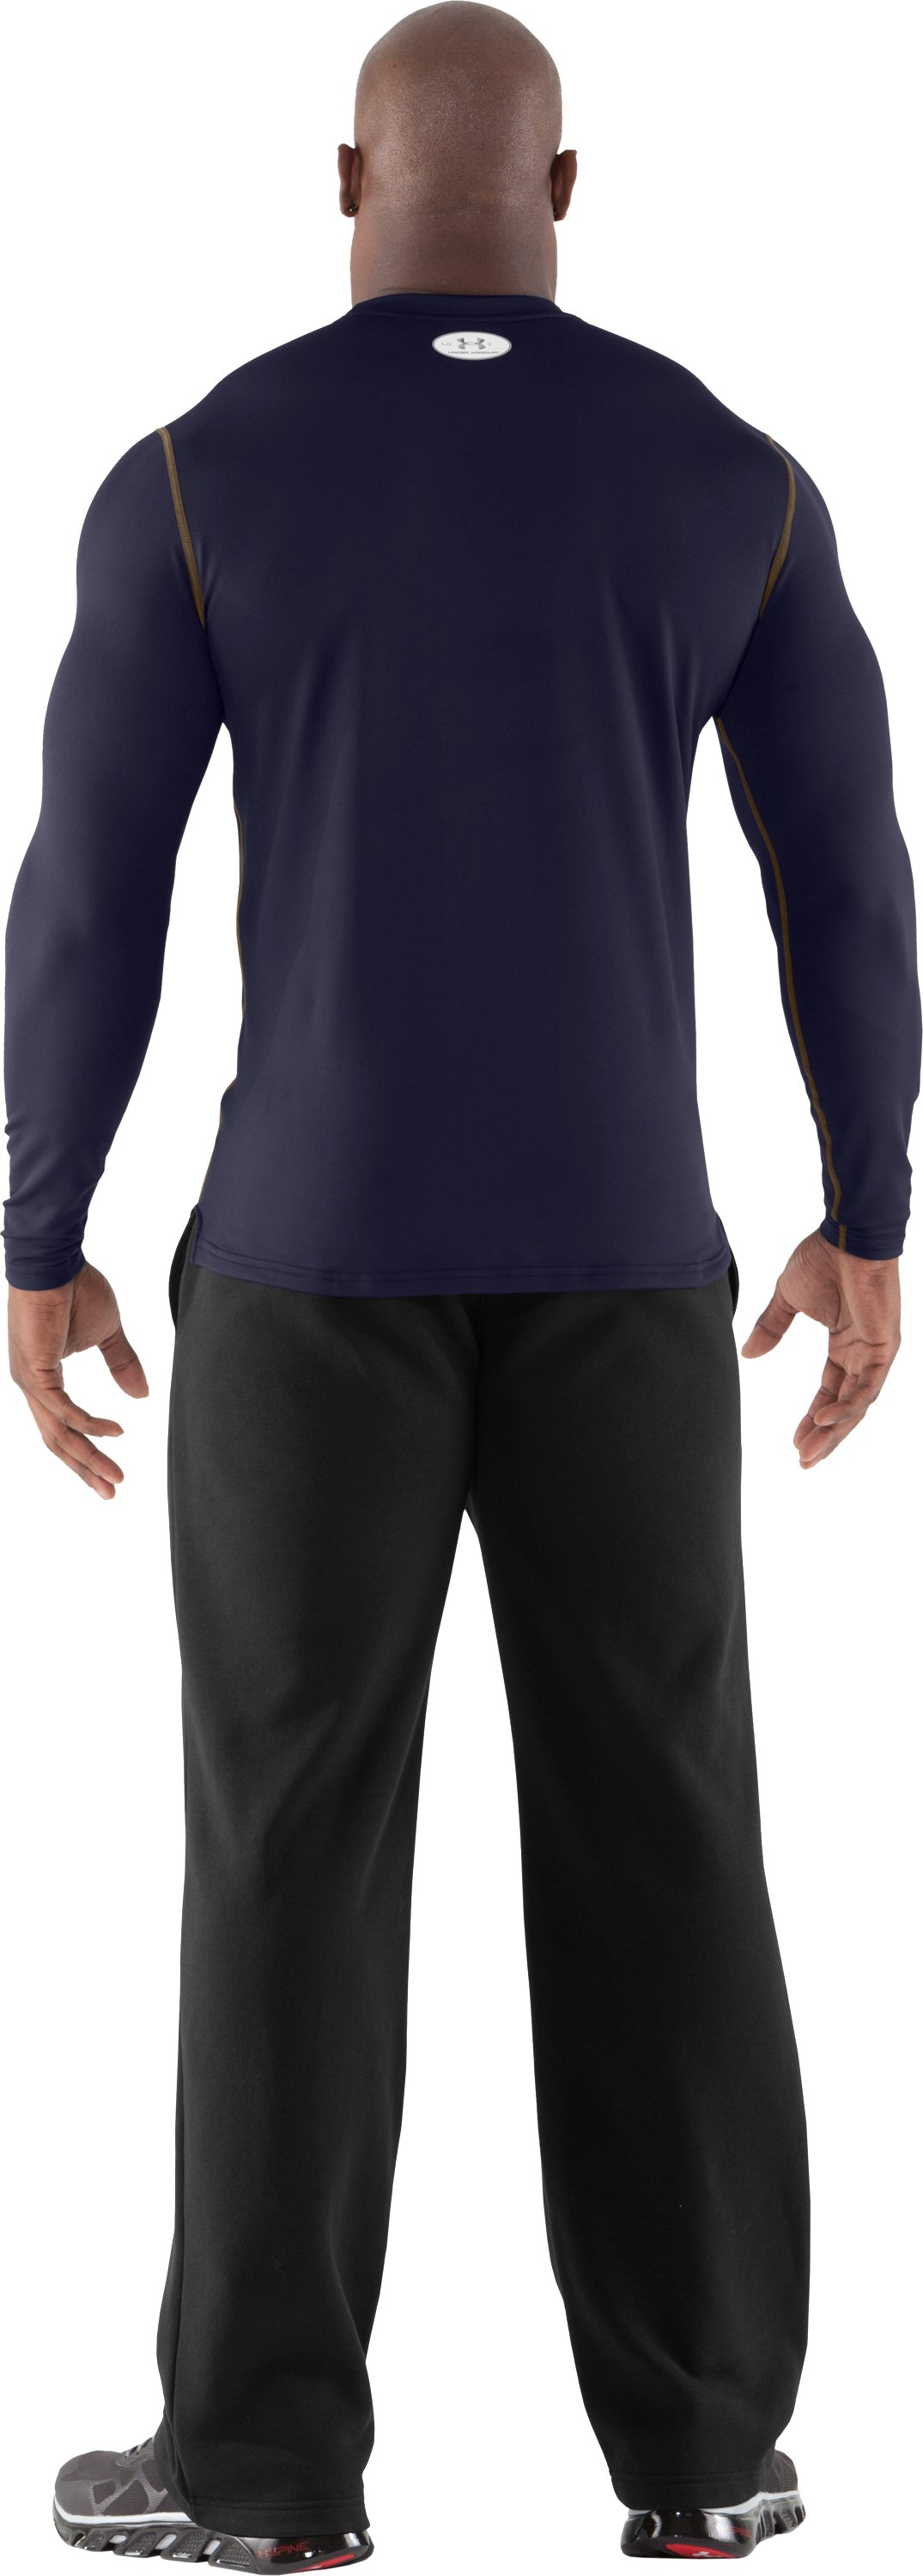 Men's ColdGear® Fitted Long Sleeve Crew, Midnight Navy, Back